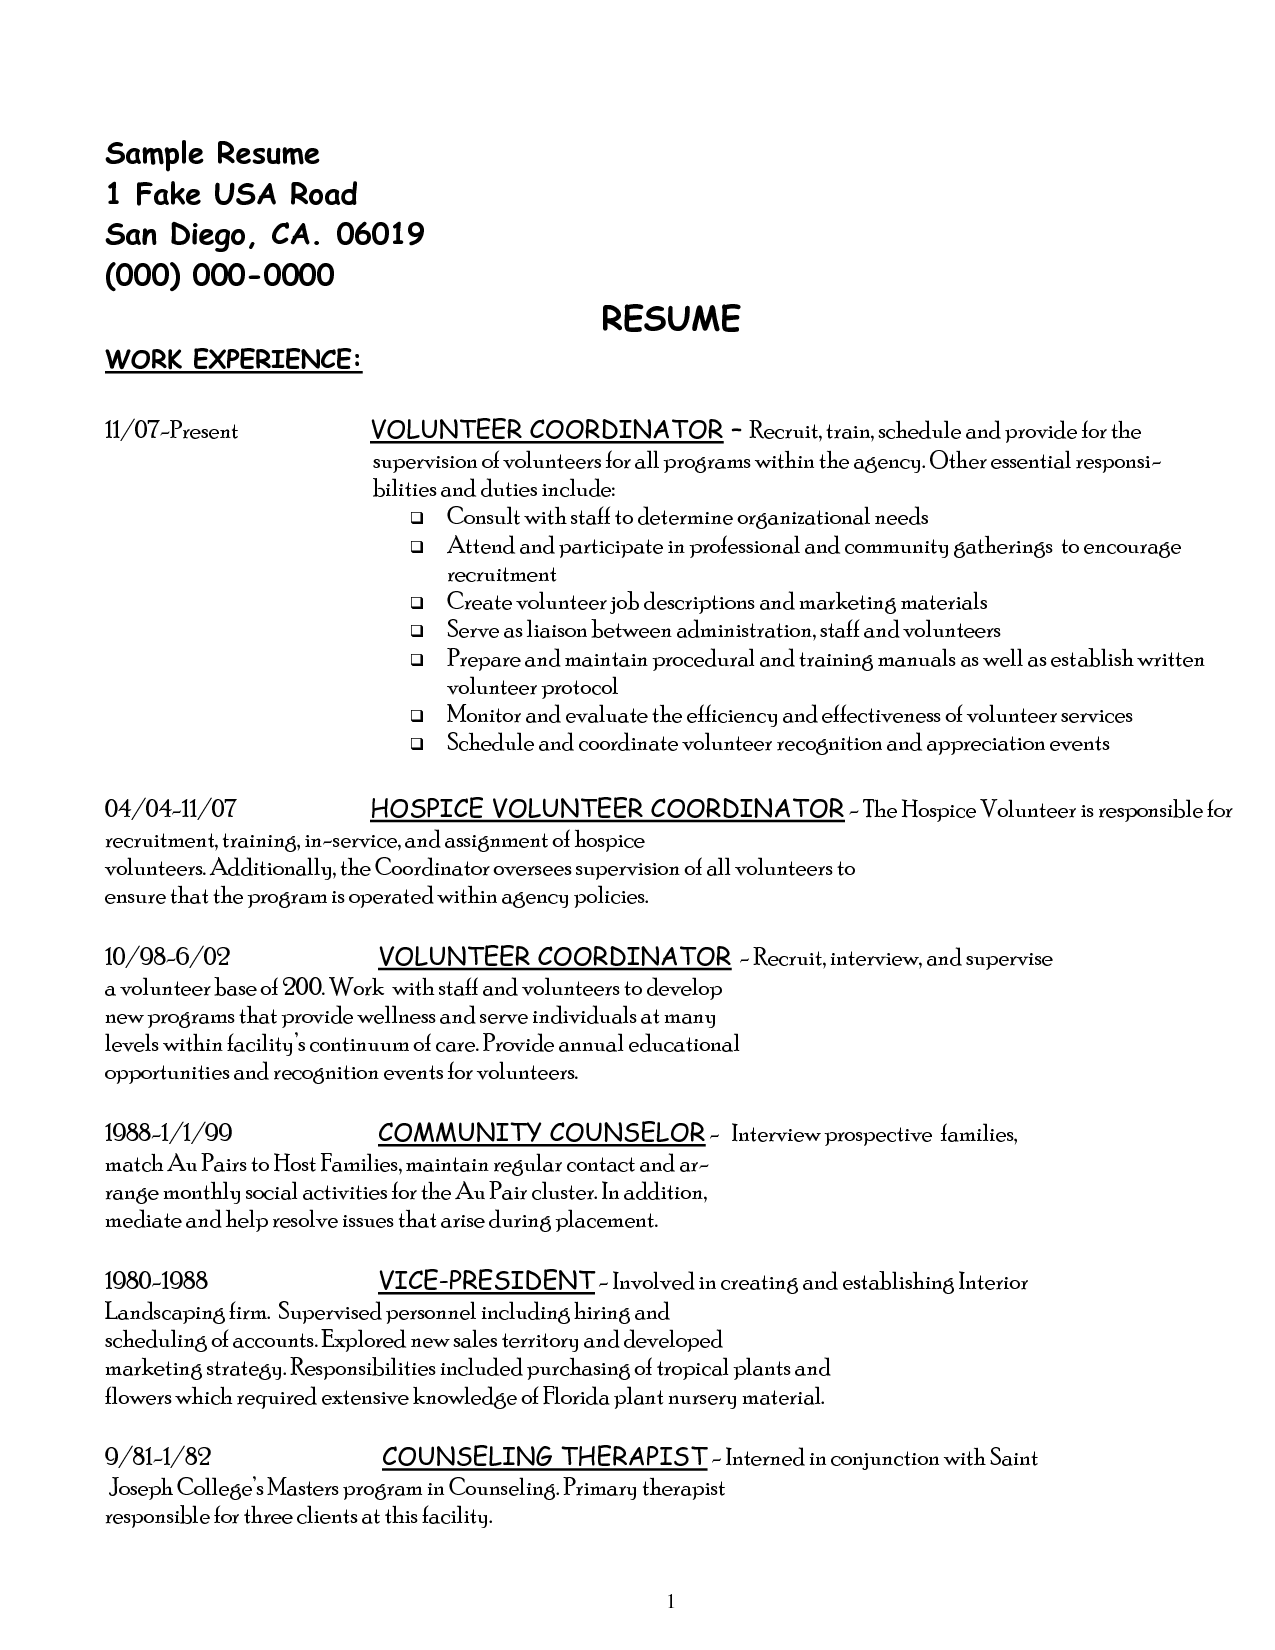 Marketing Resume Example Volunteer Work On Resume Example Imagesvolunteer Resume Business